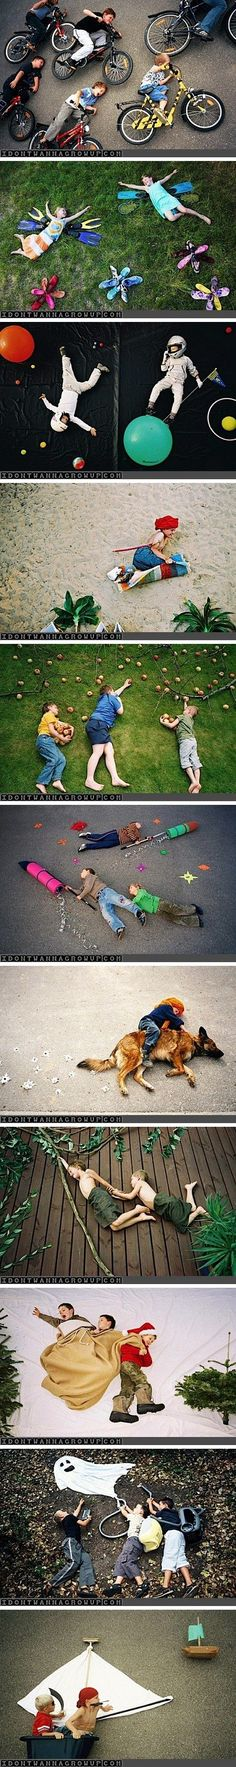 AWESOME PHOTOGRAPHY: Children's action adventure (Pic) | Daily Dawdle (Cool Crafts For Christmas)